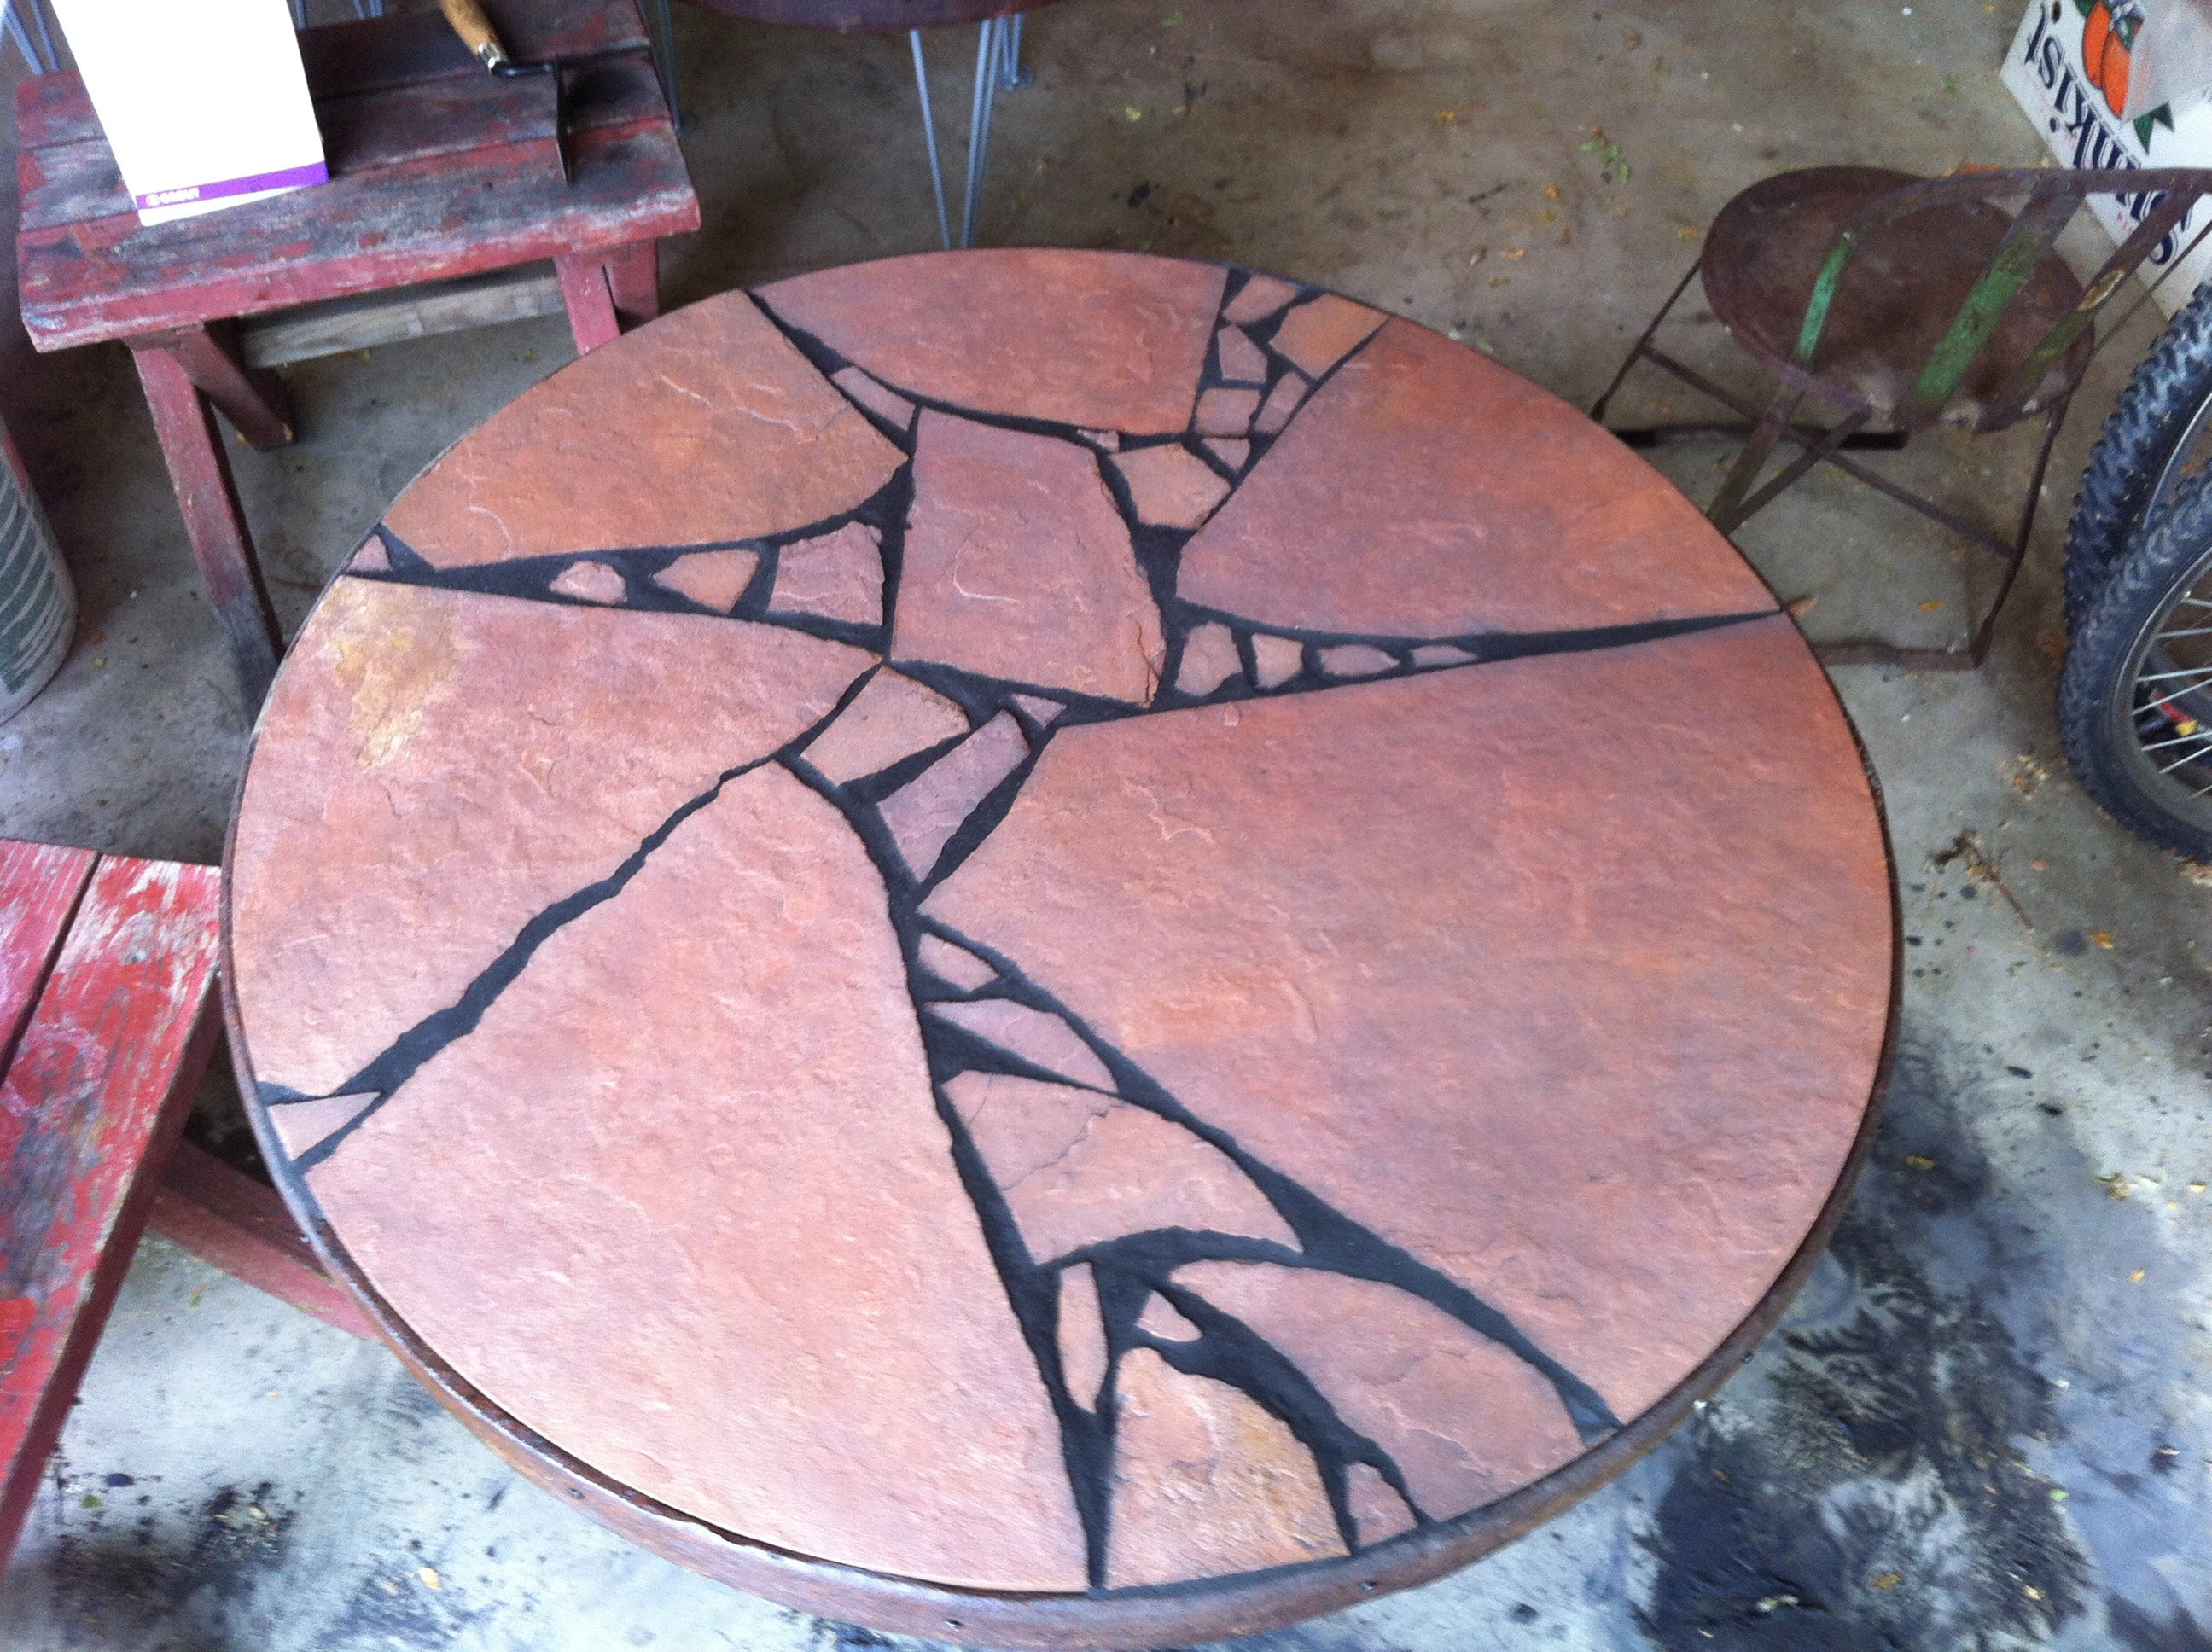 Johns table in progress.